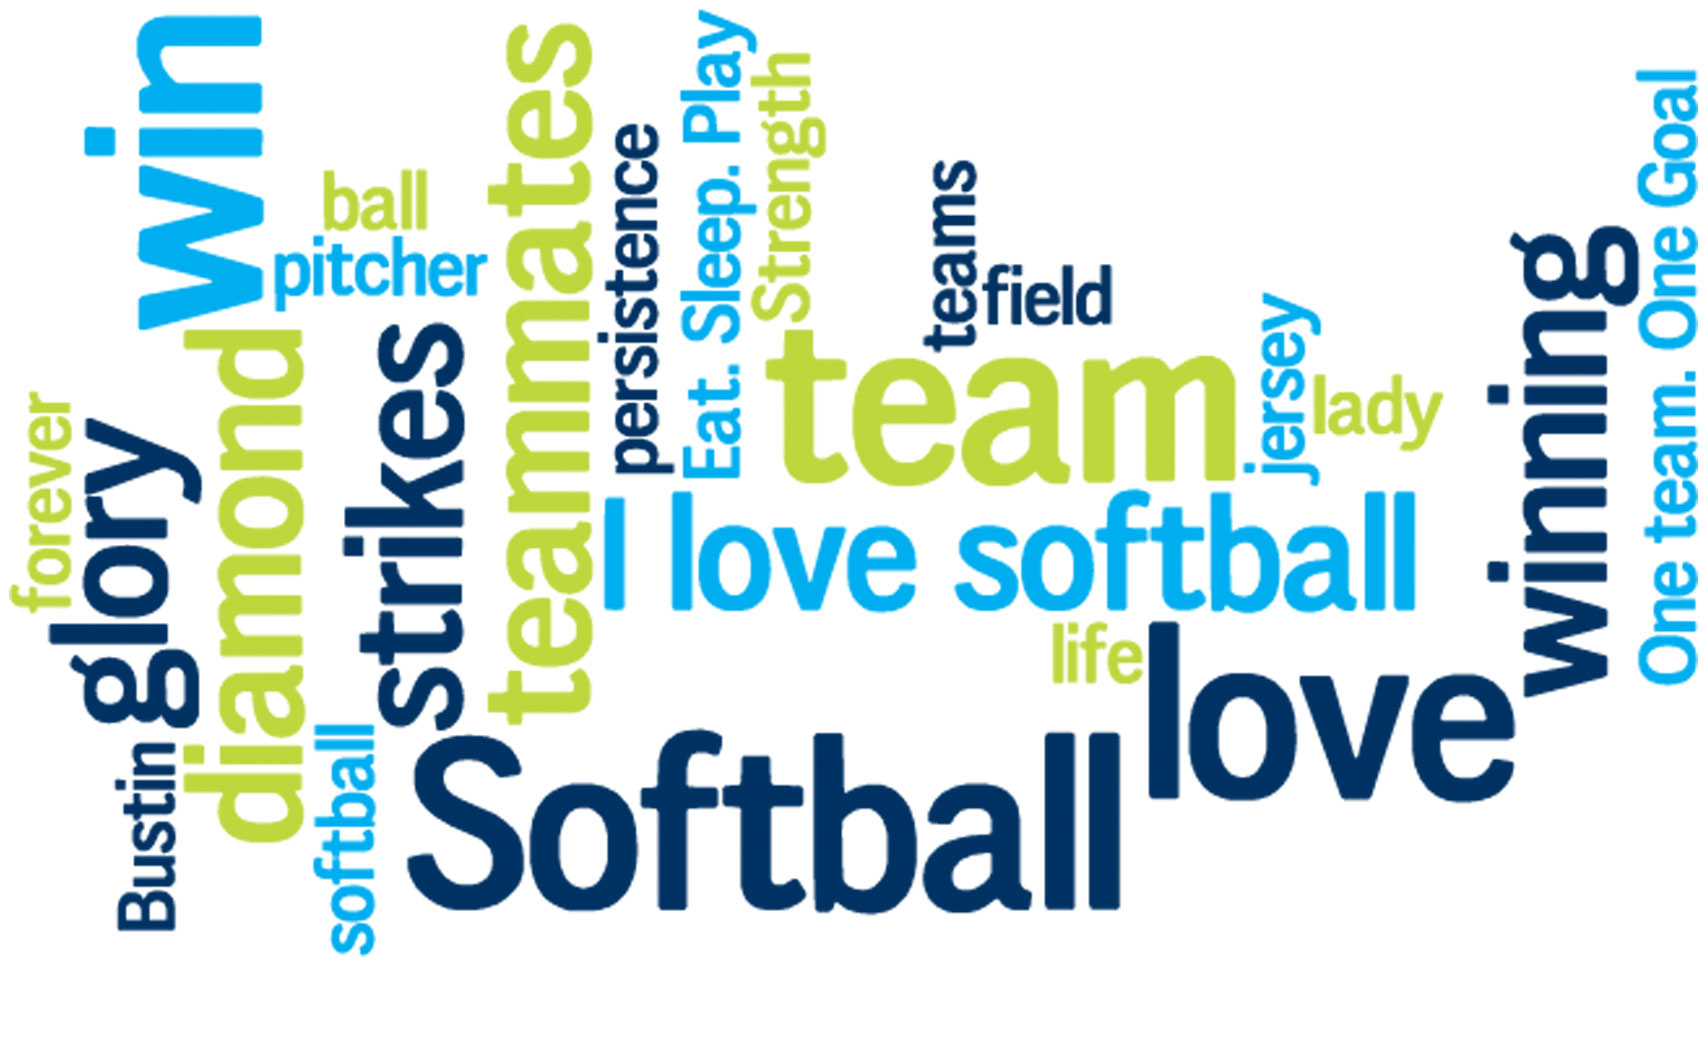 Iza Design Blogthe Best Softball Slogans And Quotes For Shirts